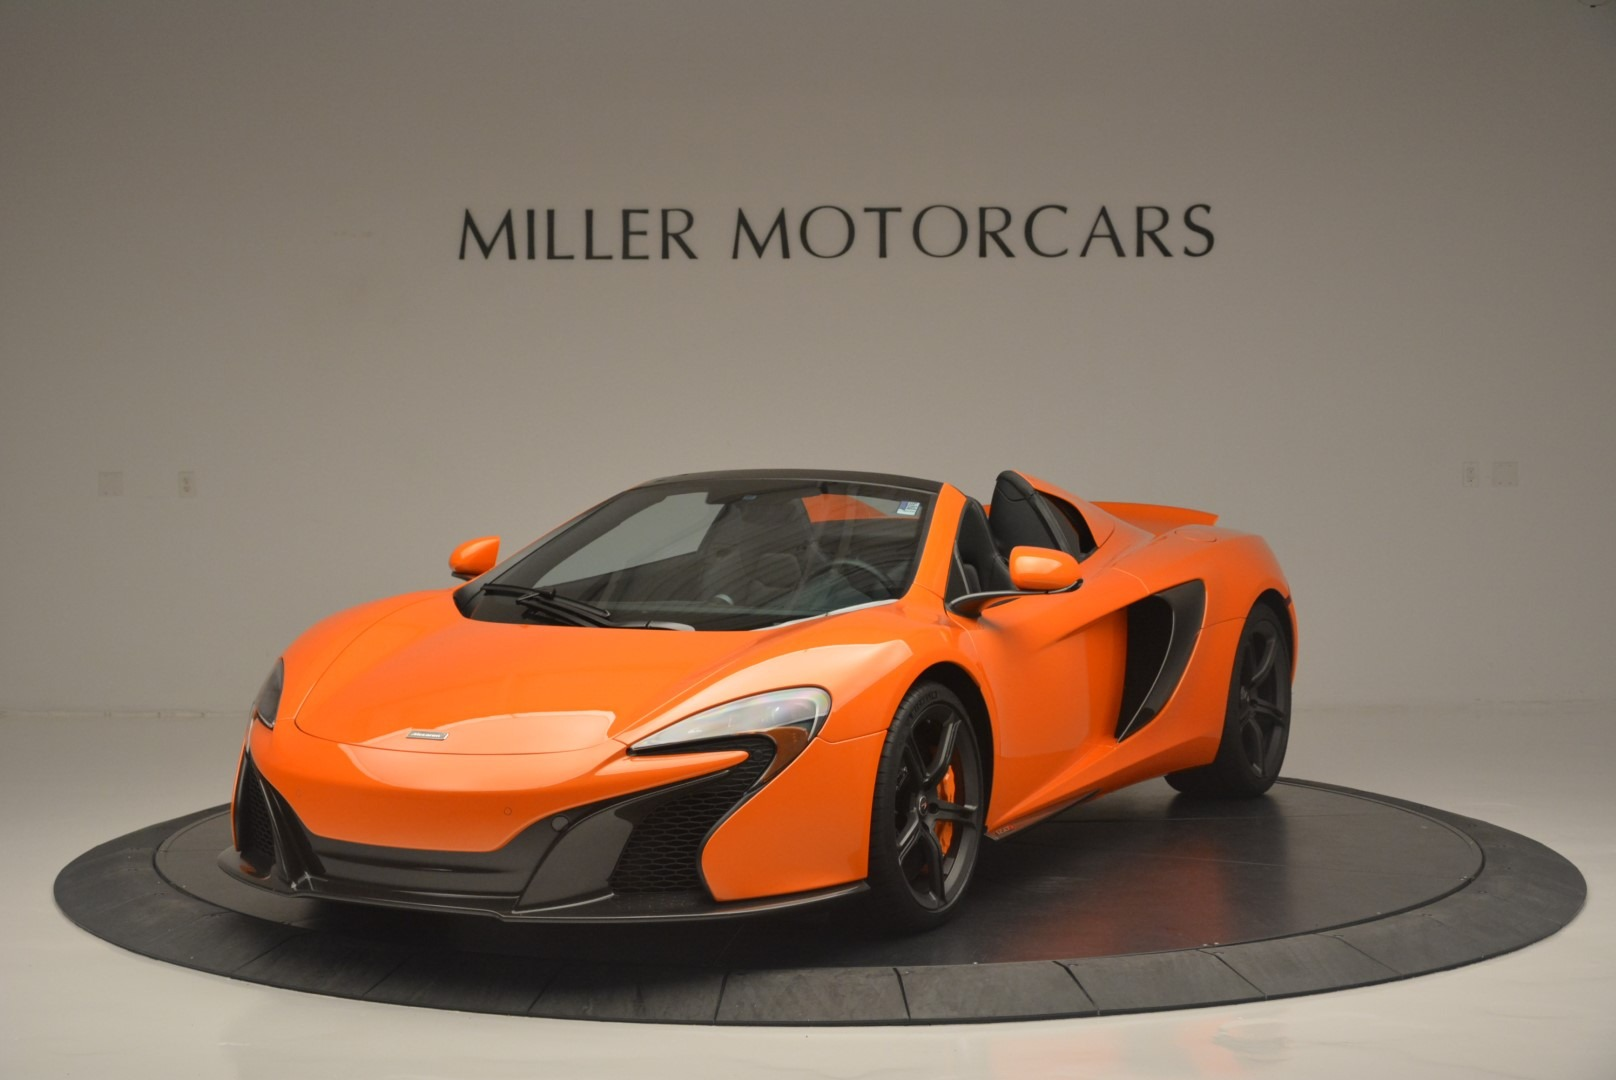 Used 2015 McLaren 650S Spider for sale Sold at Bugatti of Greenwich in Greenwich CT 06830 1